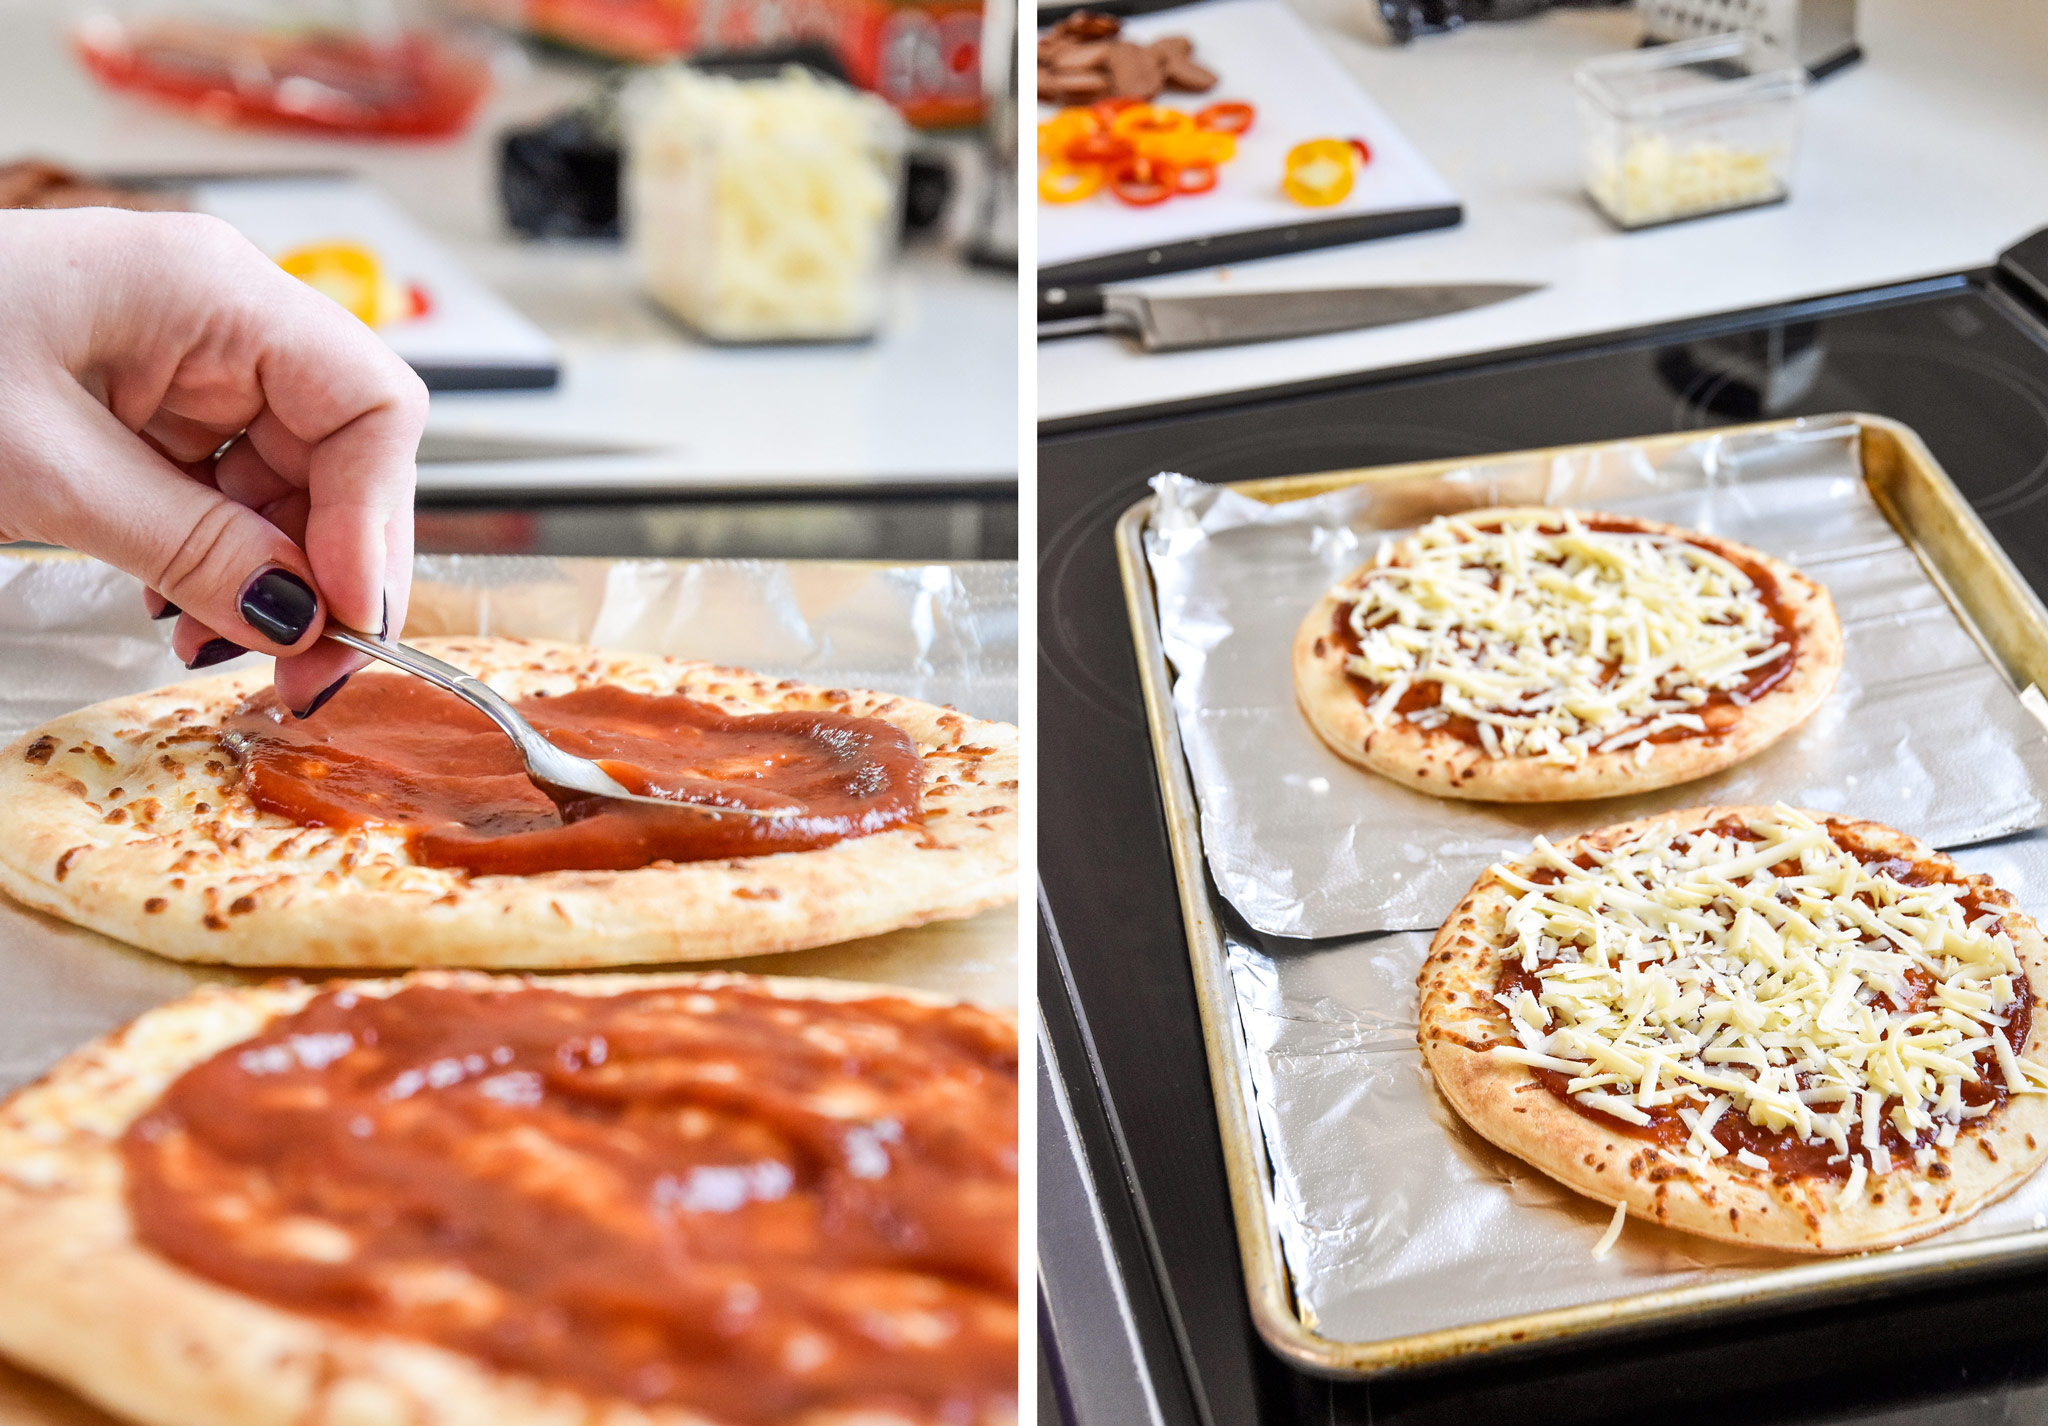 assembling the personal pizzas with sauce and cheese